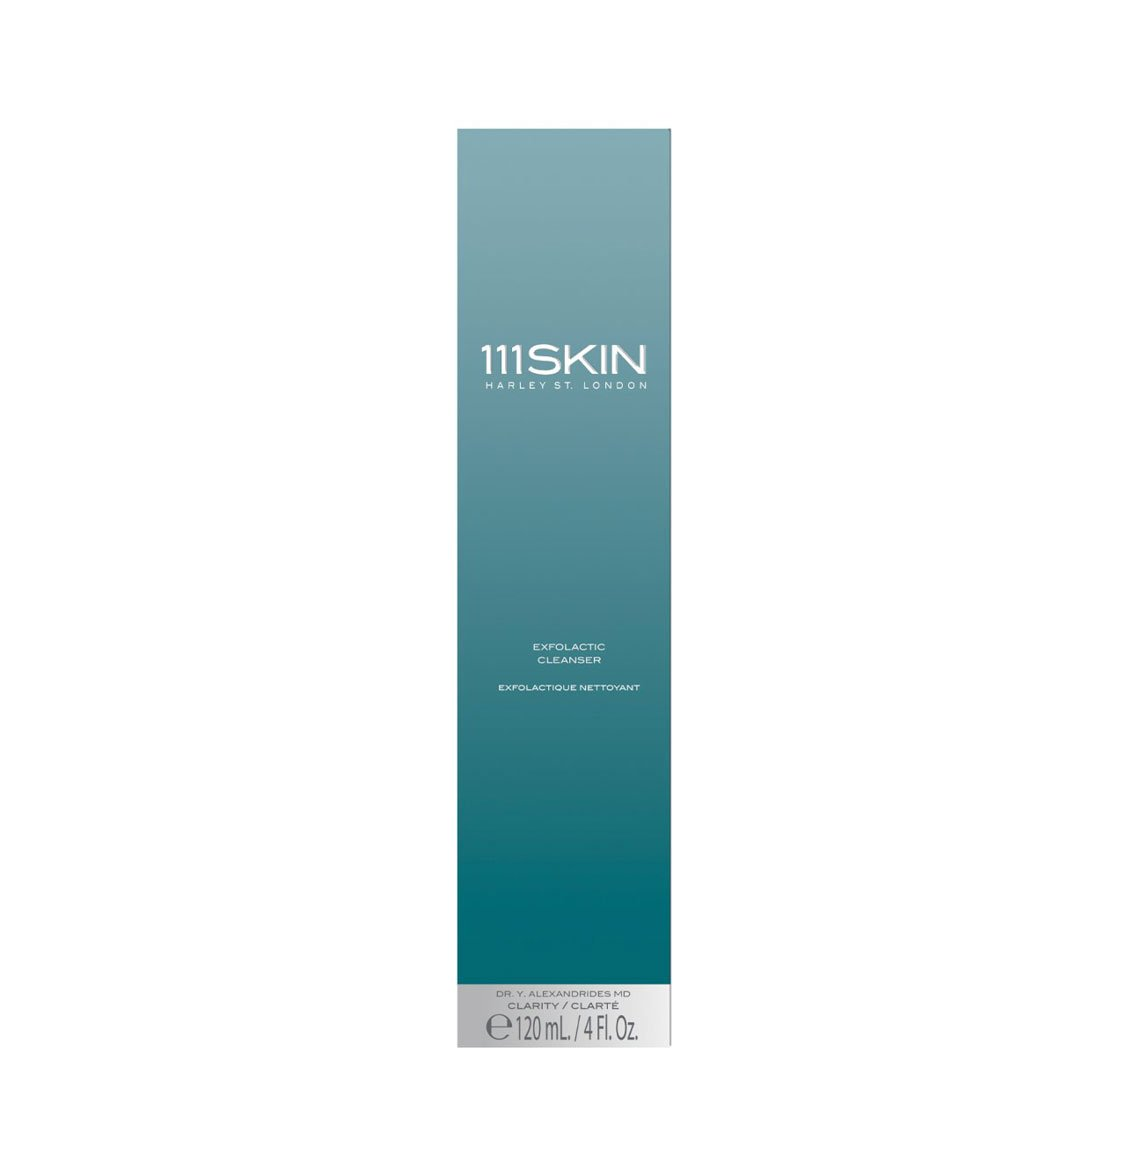 111Skin Exfolactic Cleanser 120ml